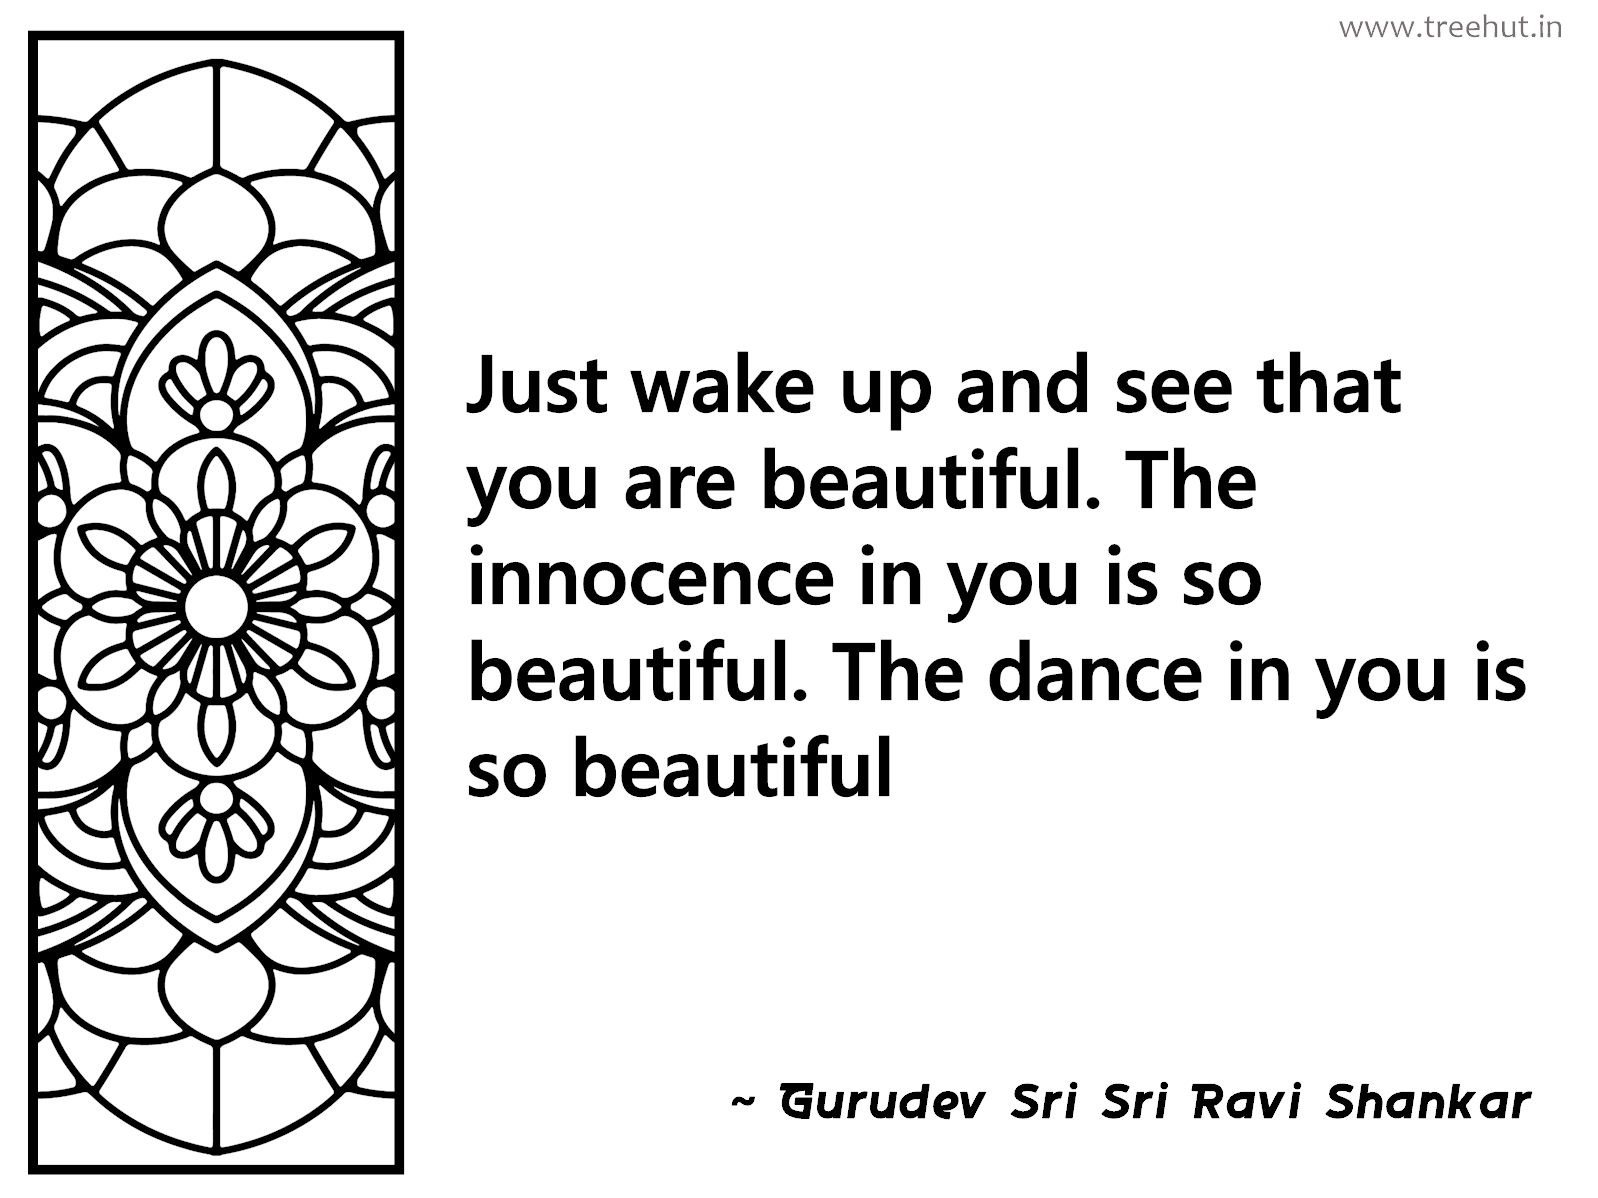 Just wake up and see that you are beautiful. The innocence in you is so beautiful. The dance in you is so beautiful Inspirational Quote by Gurudev Sri Sri Ravi Shankar, coloring pages